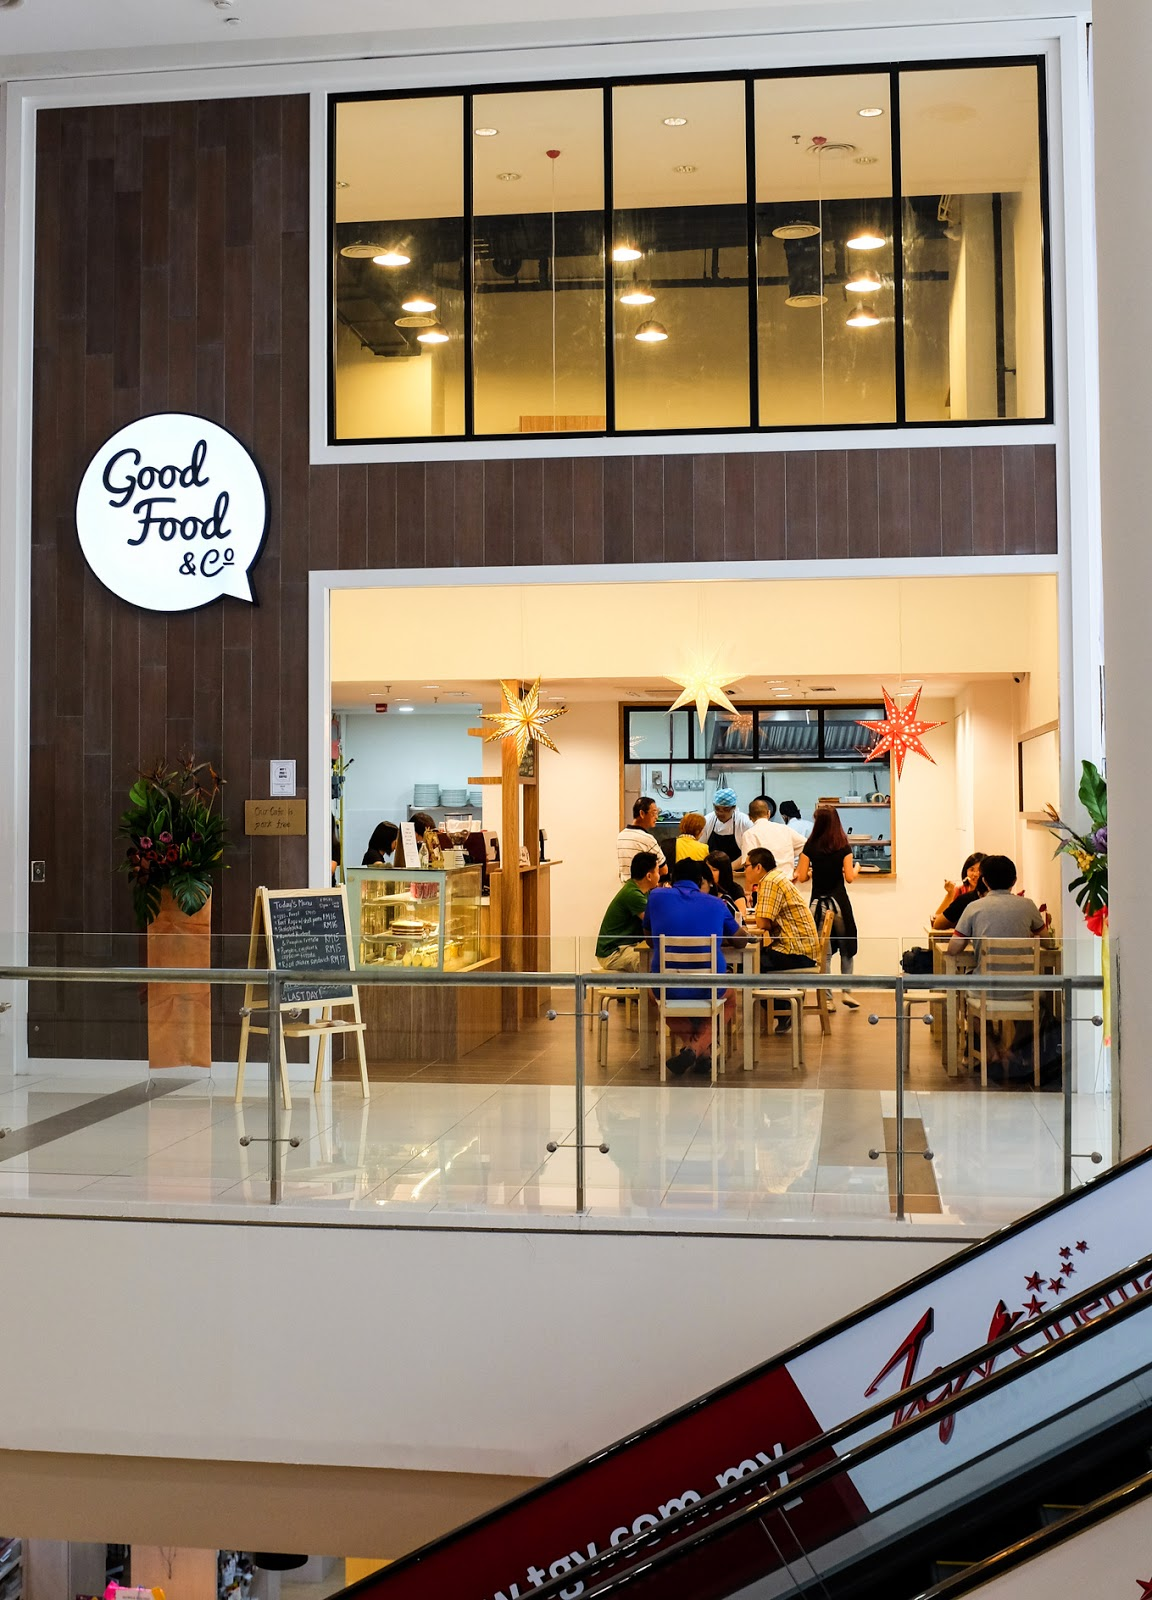 Good Food & Co @ Jaya Shopping Centre